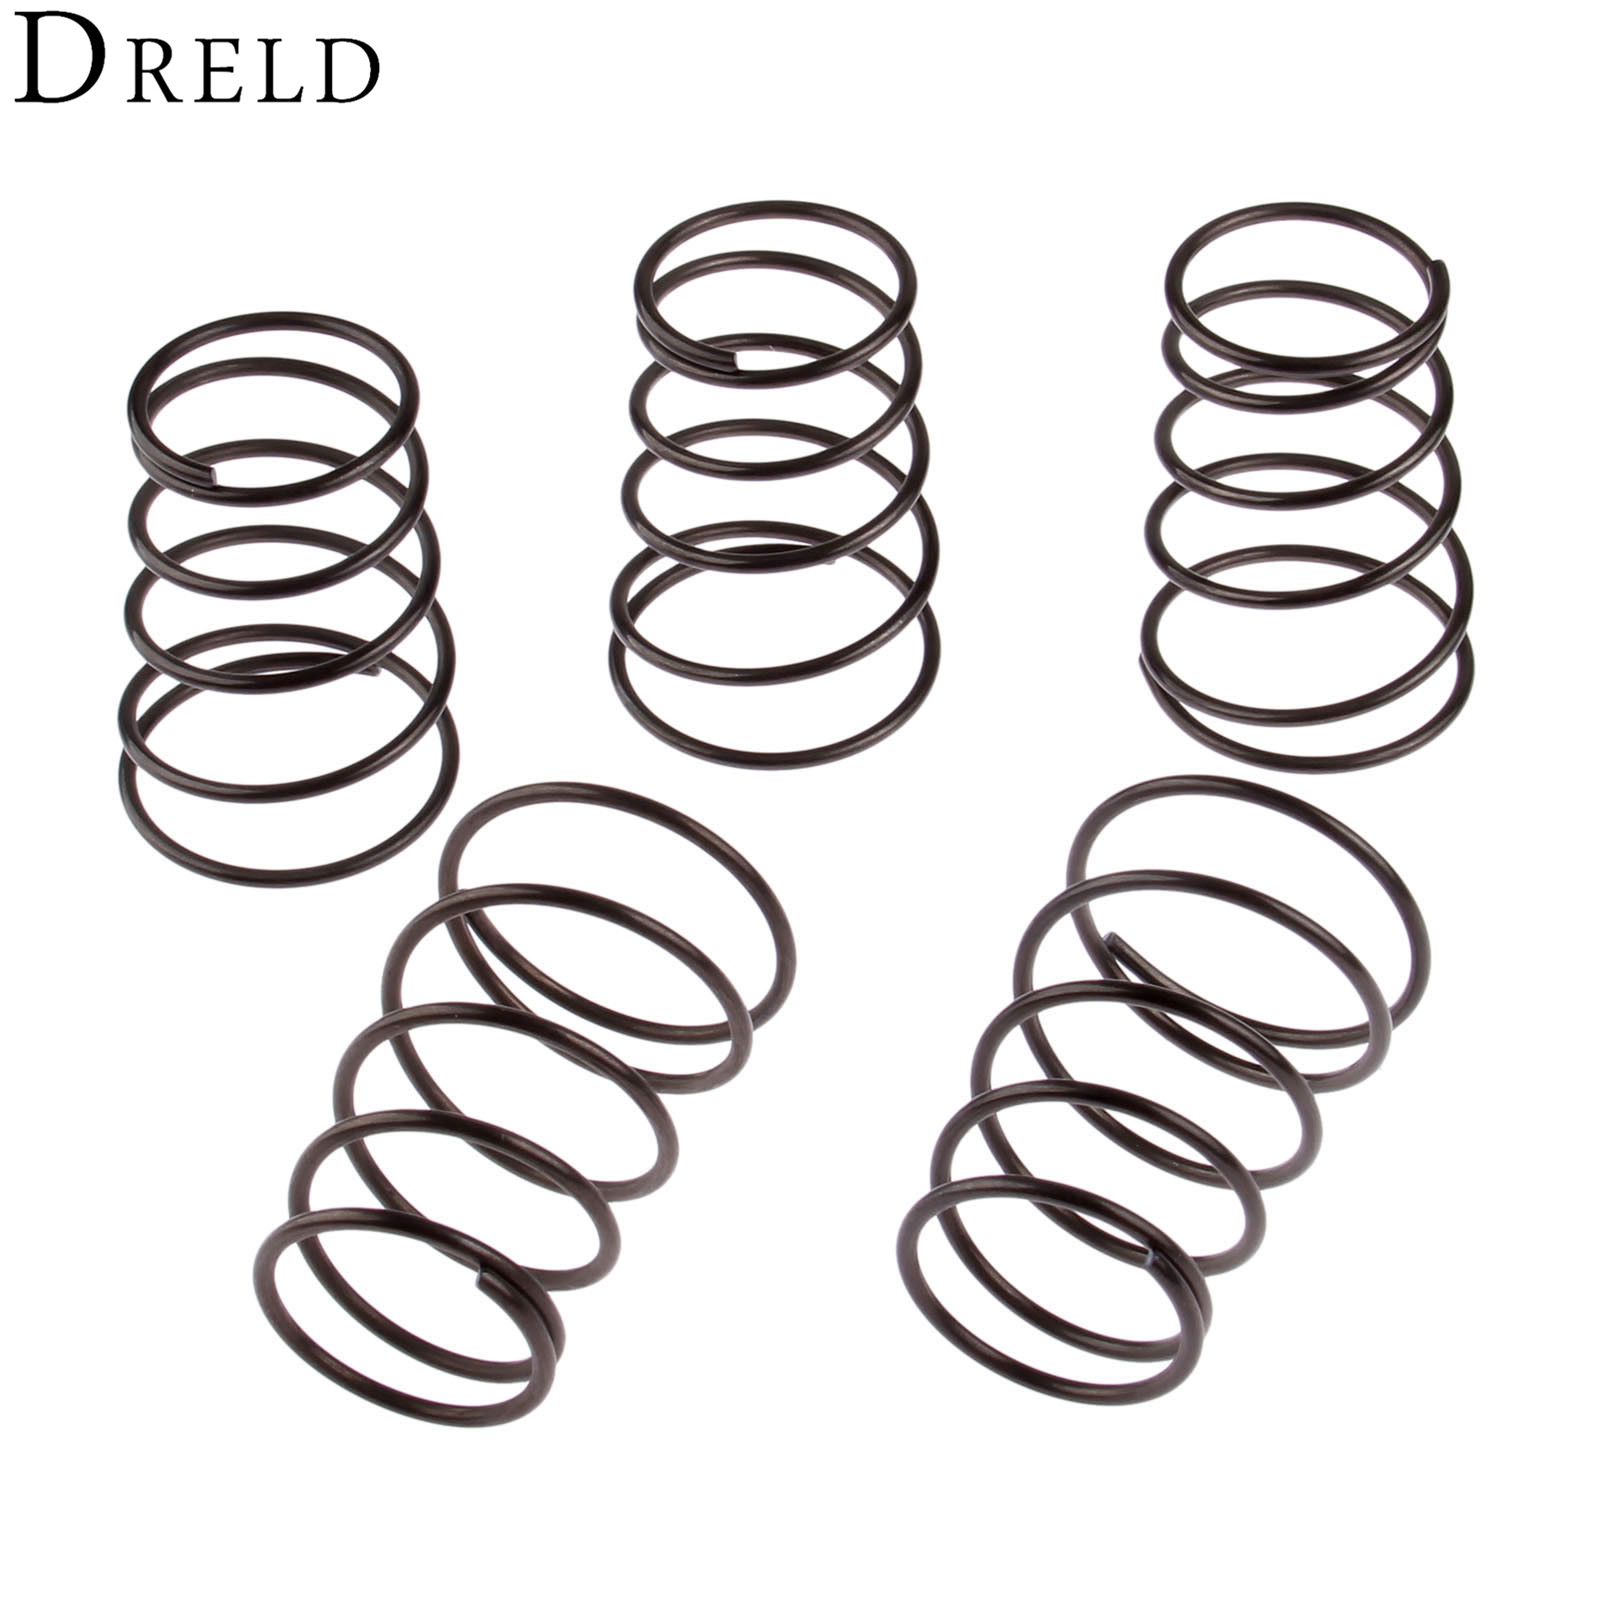 DRELD 5Pcs Universal Nylon Trimmer Head Spring Garden Lawn Mower Tool Parts Bump Spring Steel For Garden Tools Parts Replacement